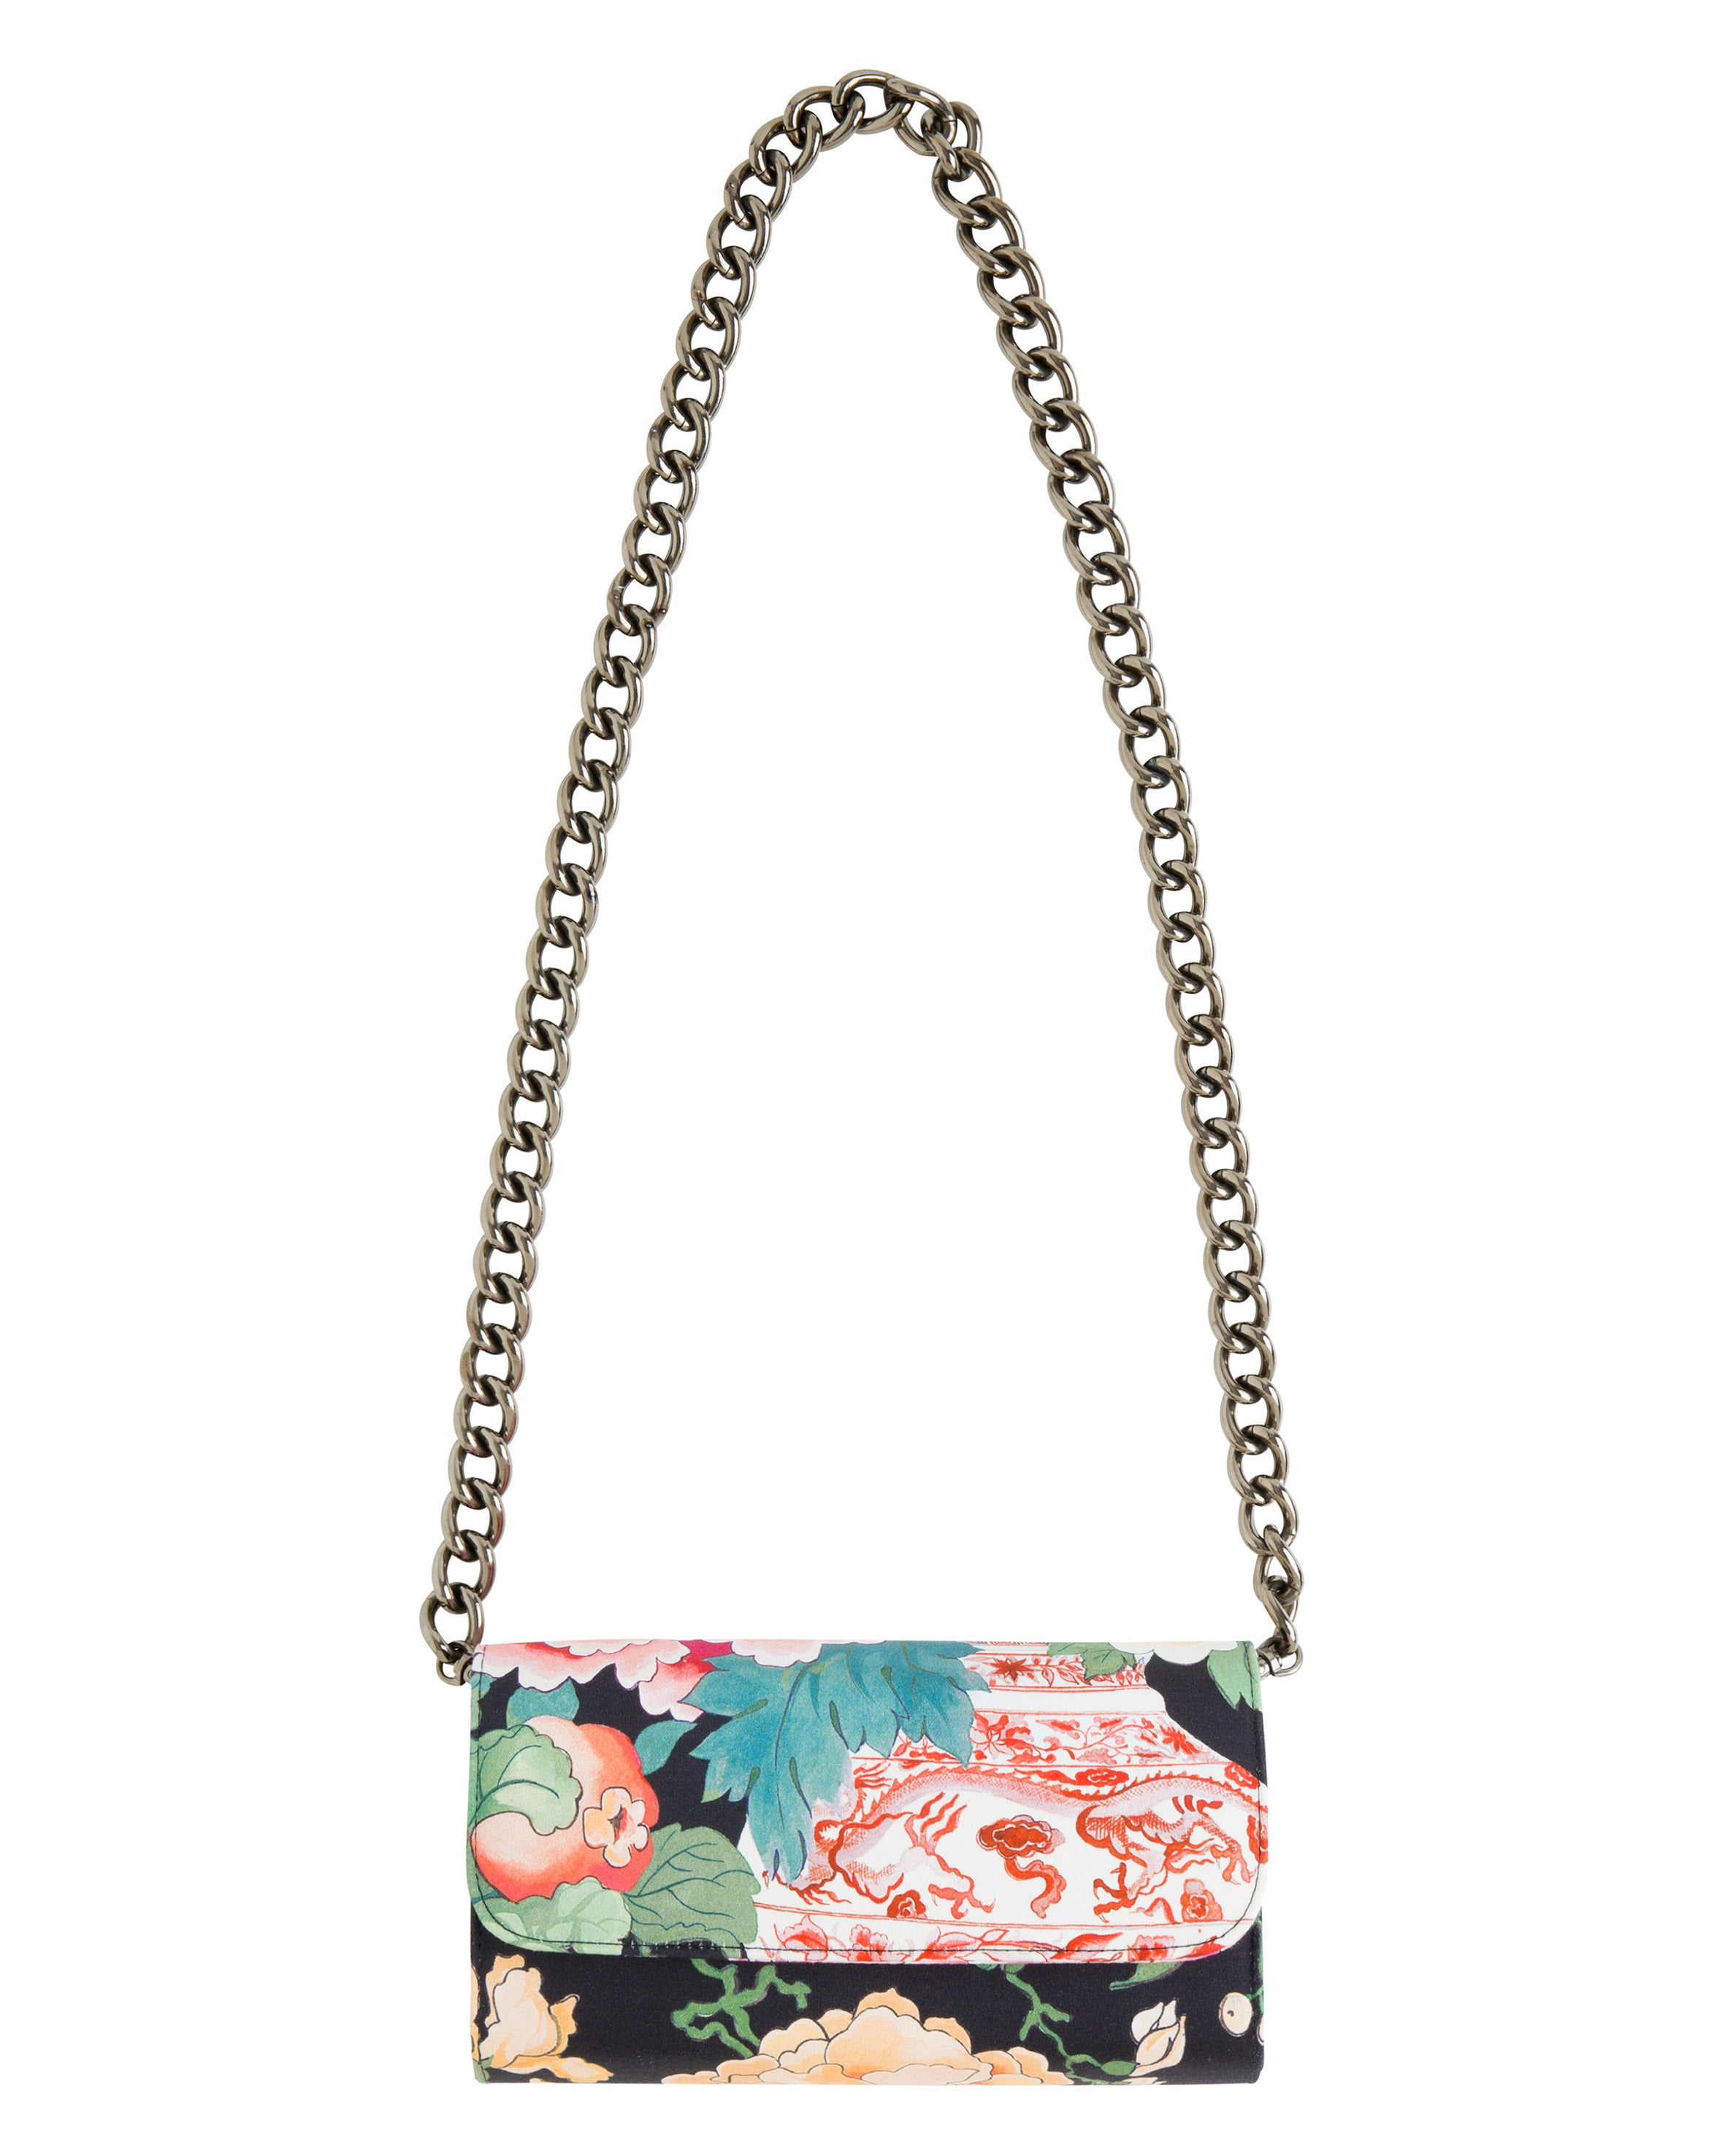 CHINOISERIE CLUTCH IN BLACK VICTOR PRINT